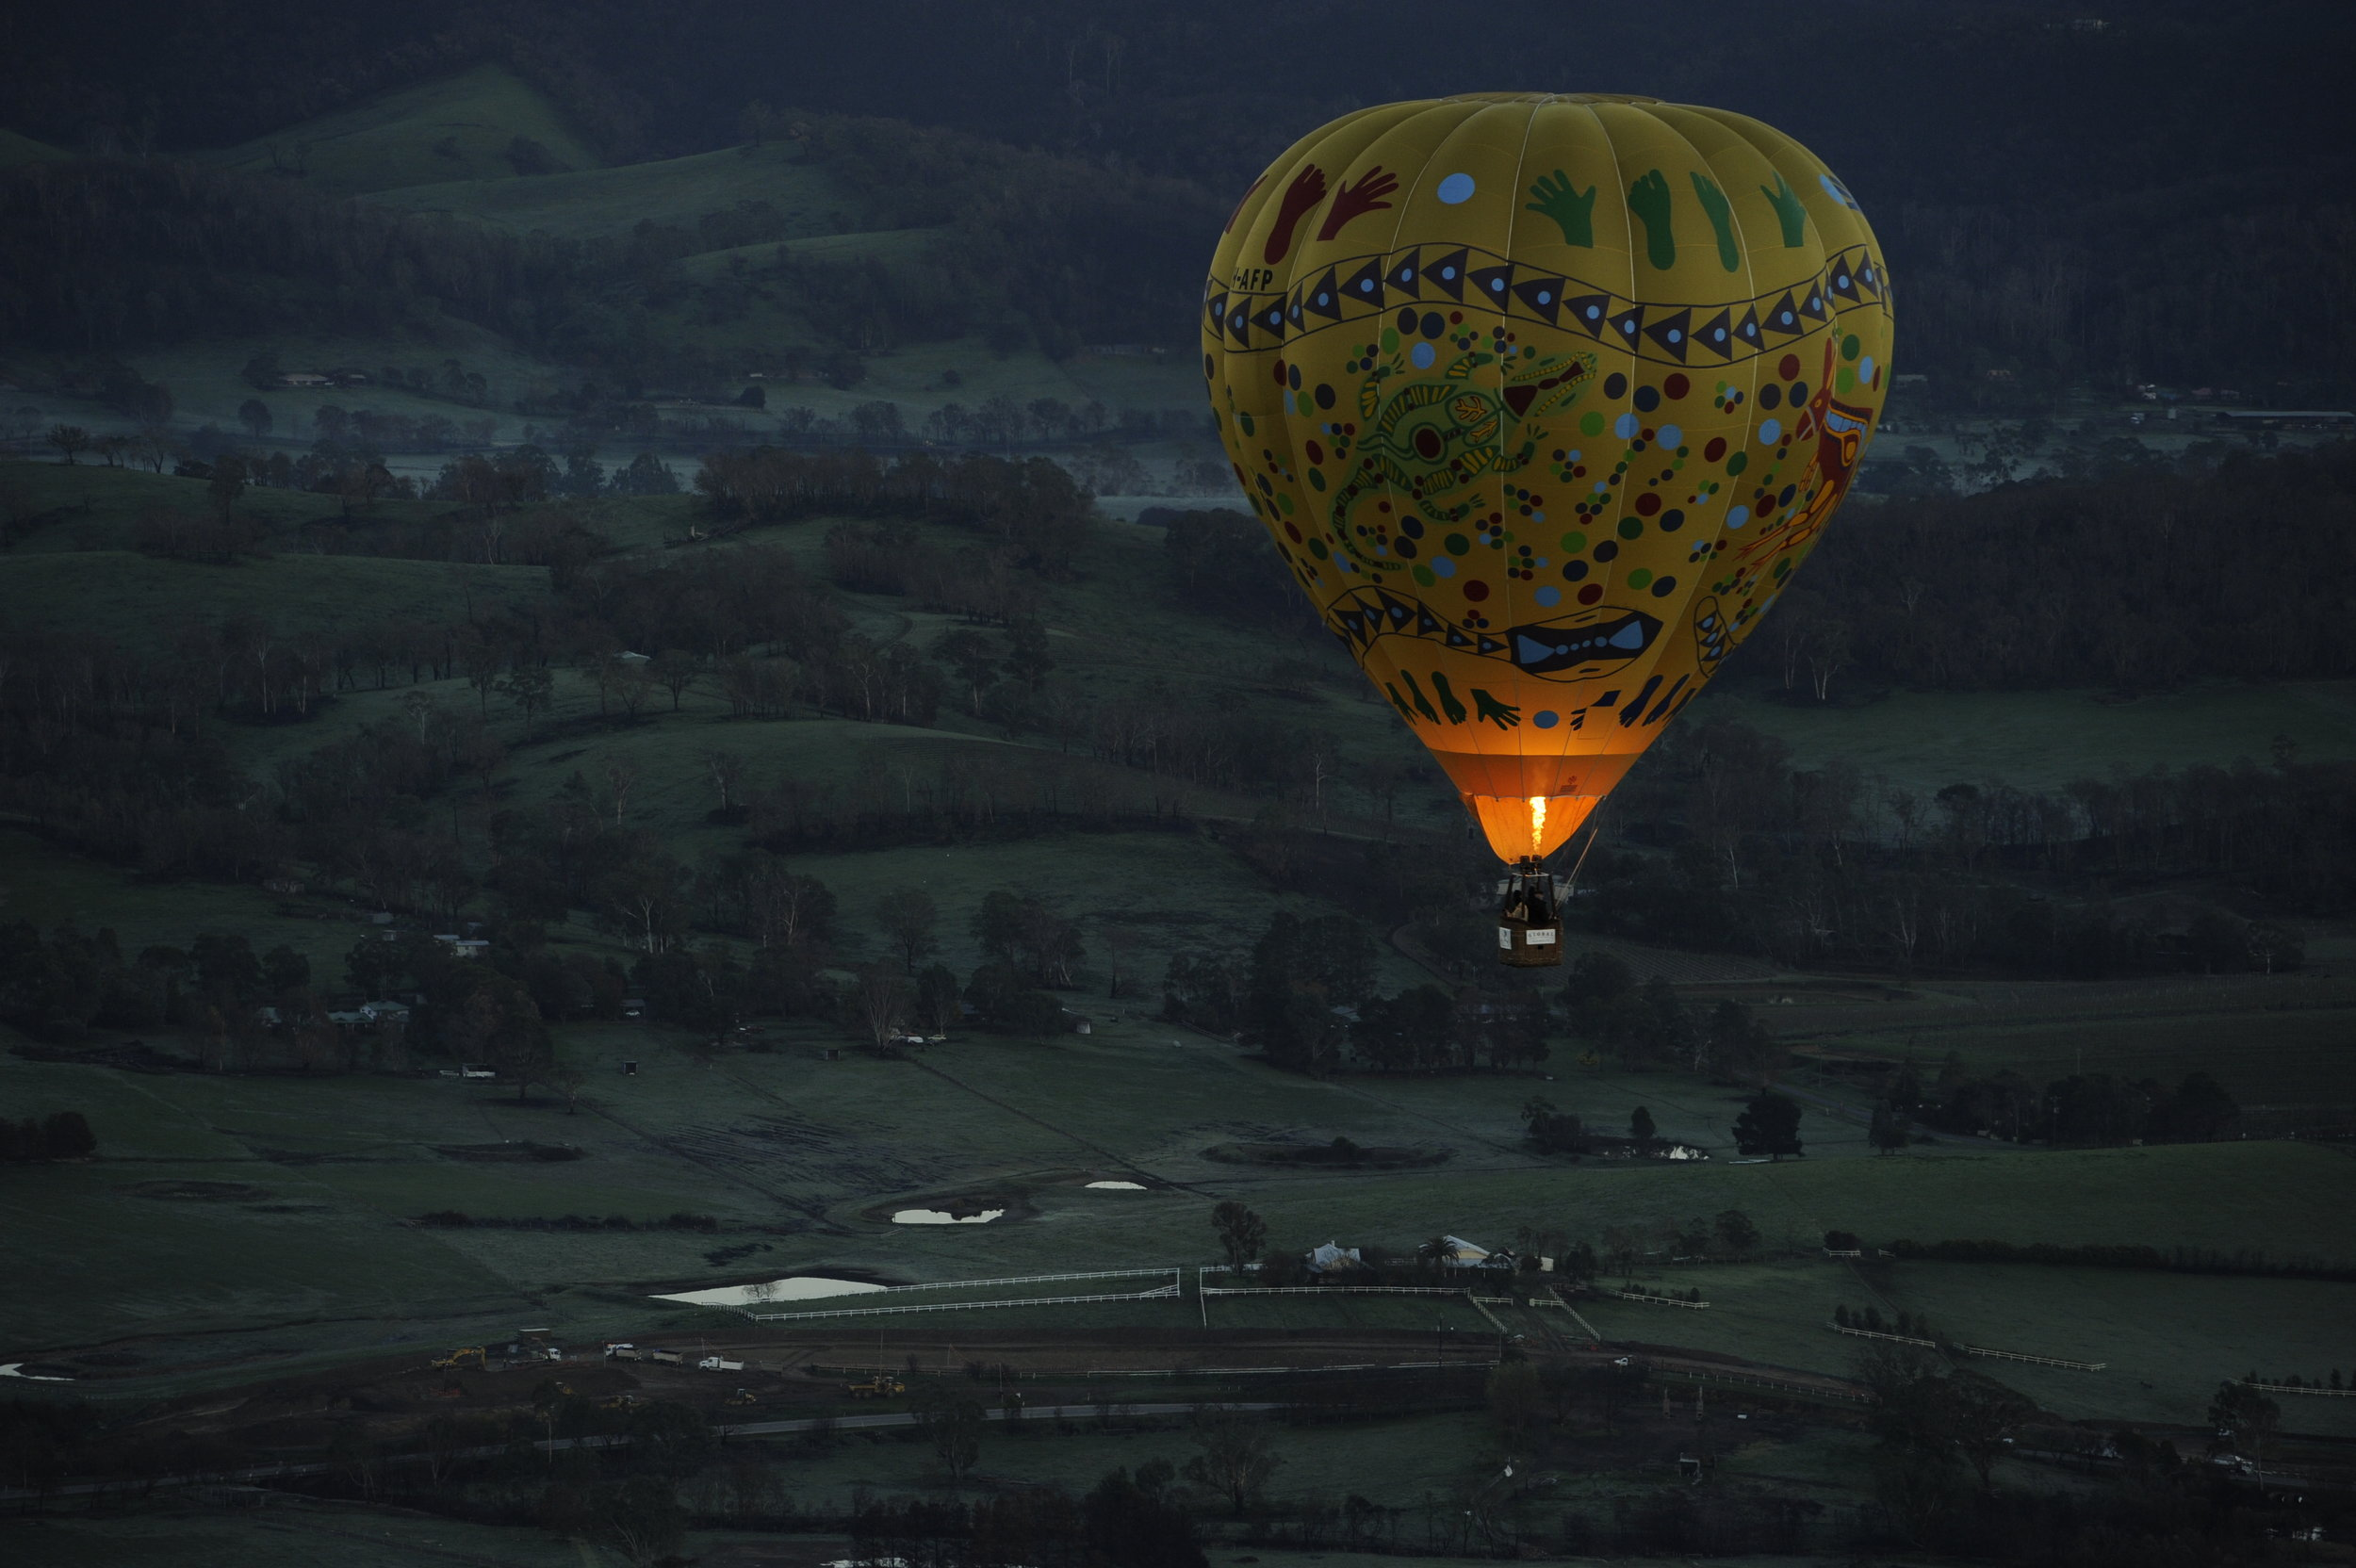 A picture Bill took of the hot air balloon I was in with Gen, Mr. Blue and an Australian balloon pilot.